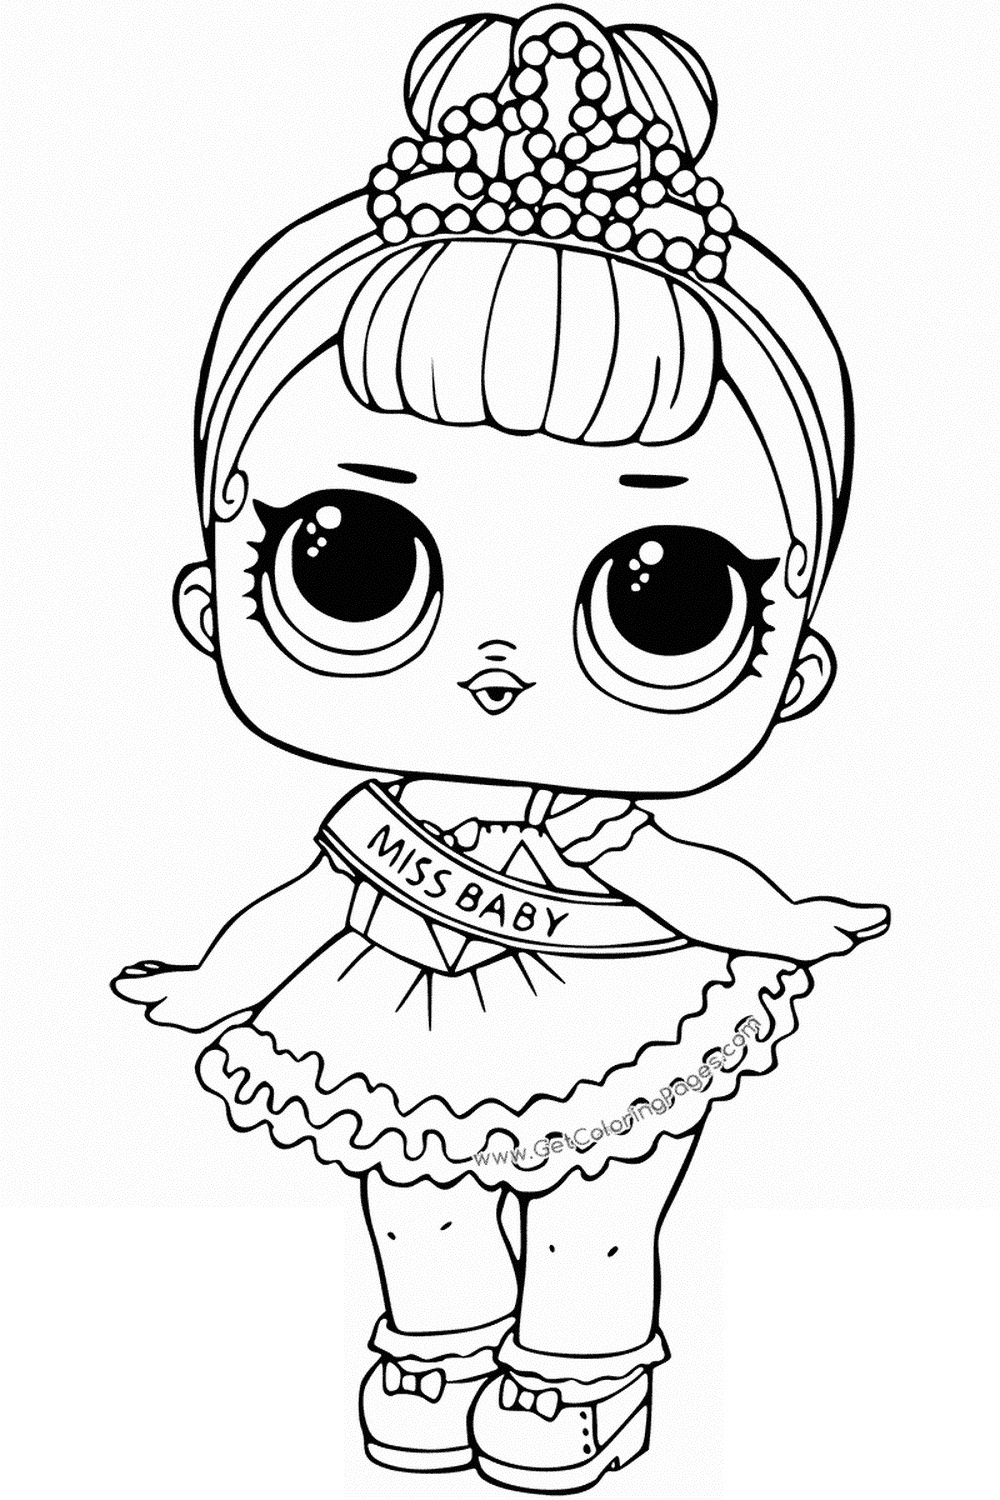 Coloring Pages To Print Lol Surprise Dolls Coloring Pages Print Out For Free All The